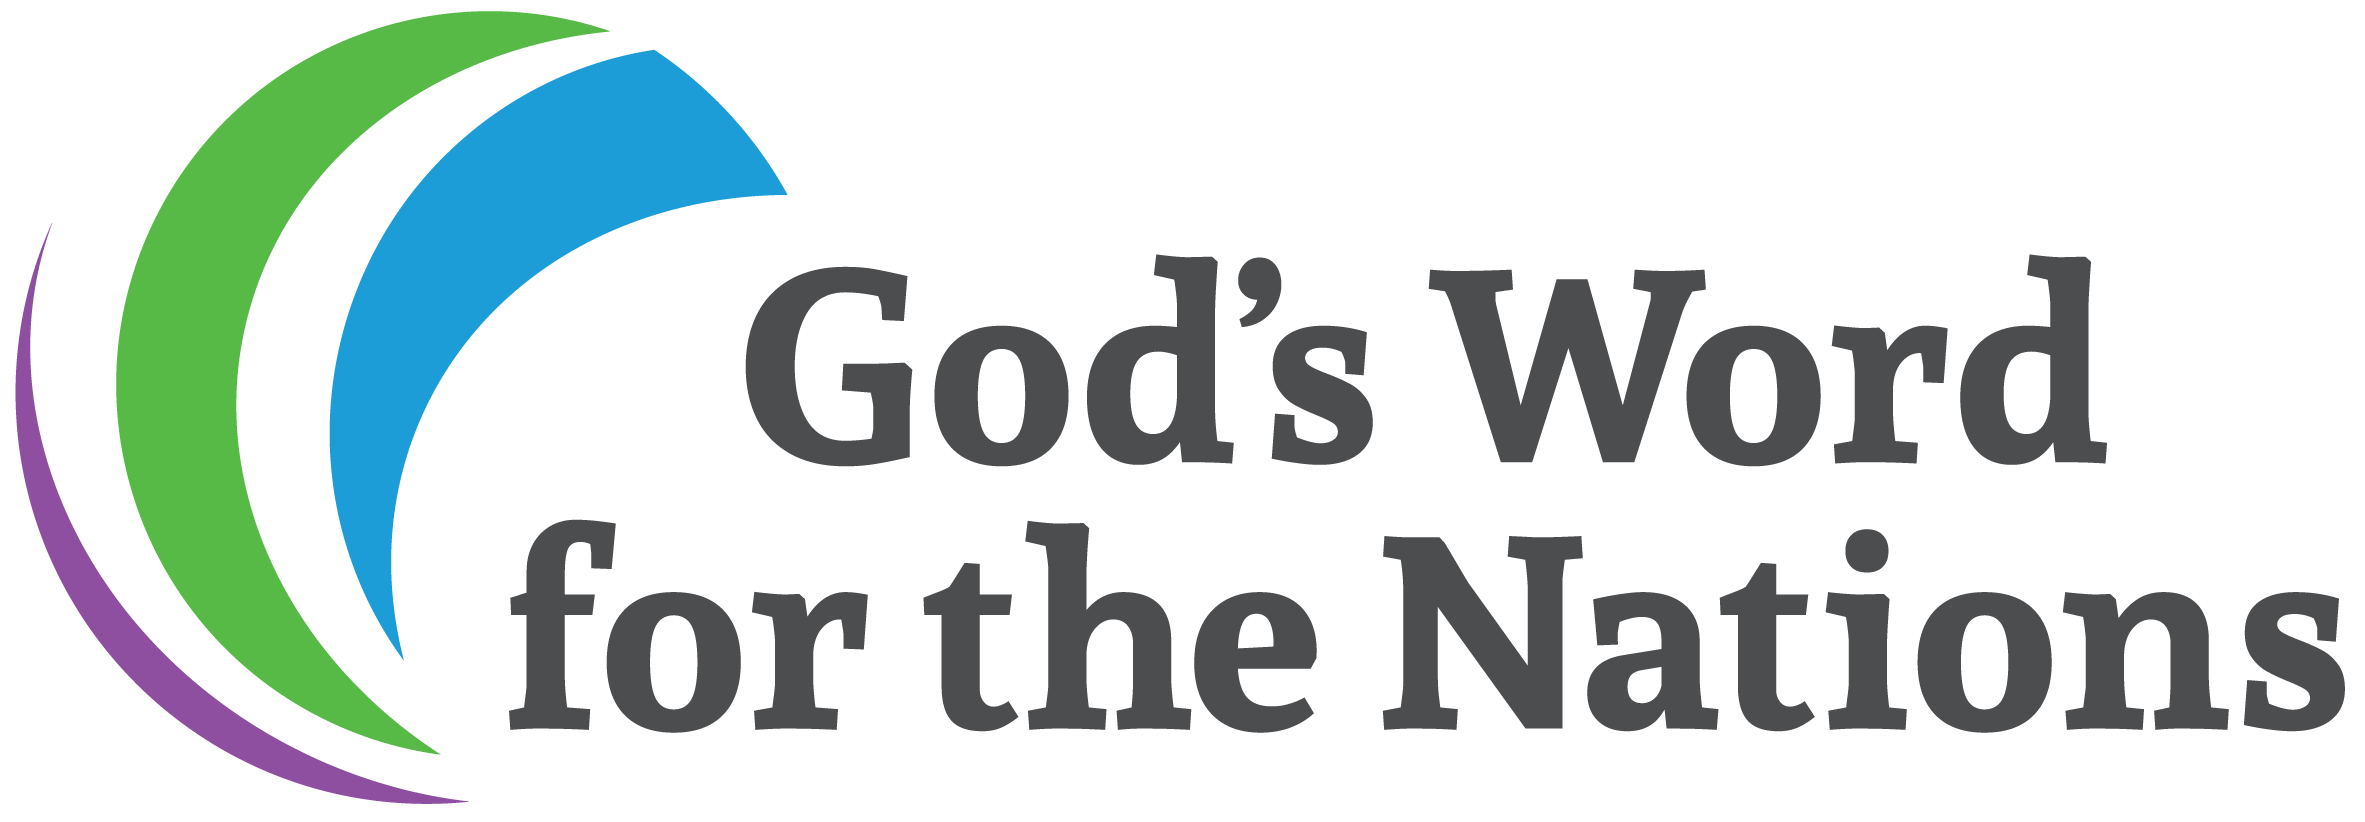 God's Word for the Nations logo